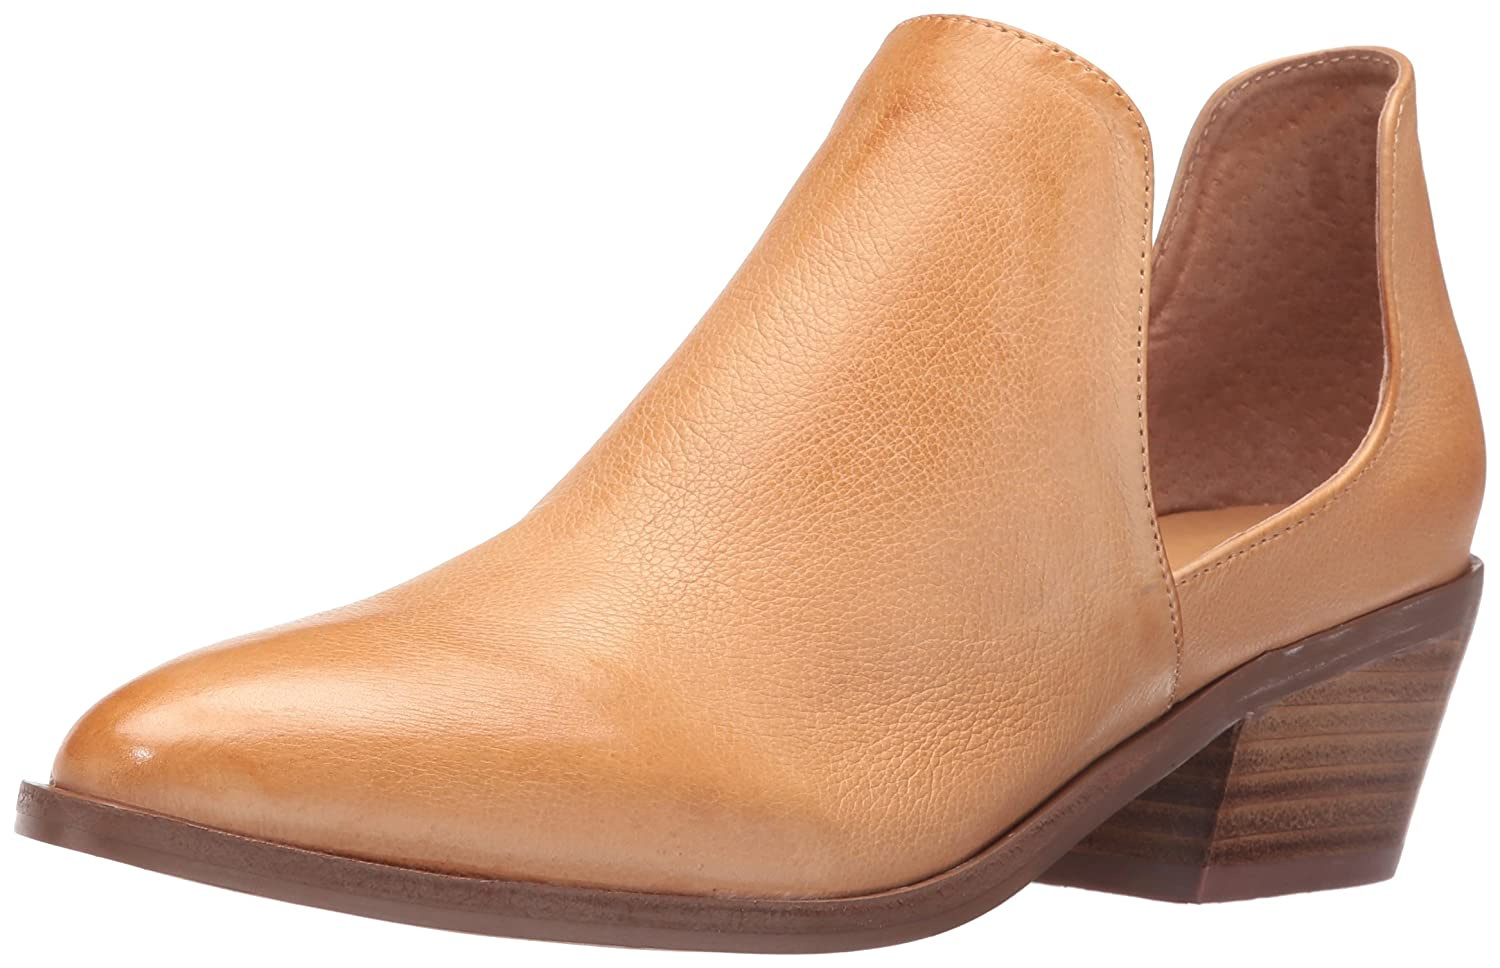 Chinese Laundry Women's Focus Ankle Bootie B01K6NIE30 9.5 B(M) US|Natural Leather